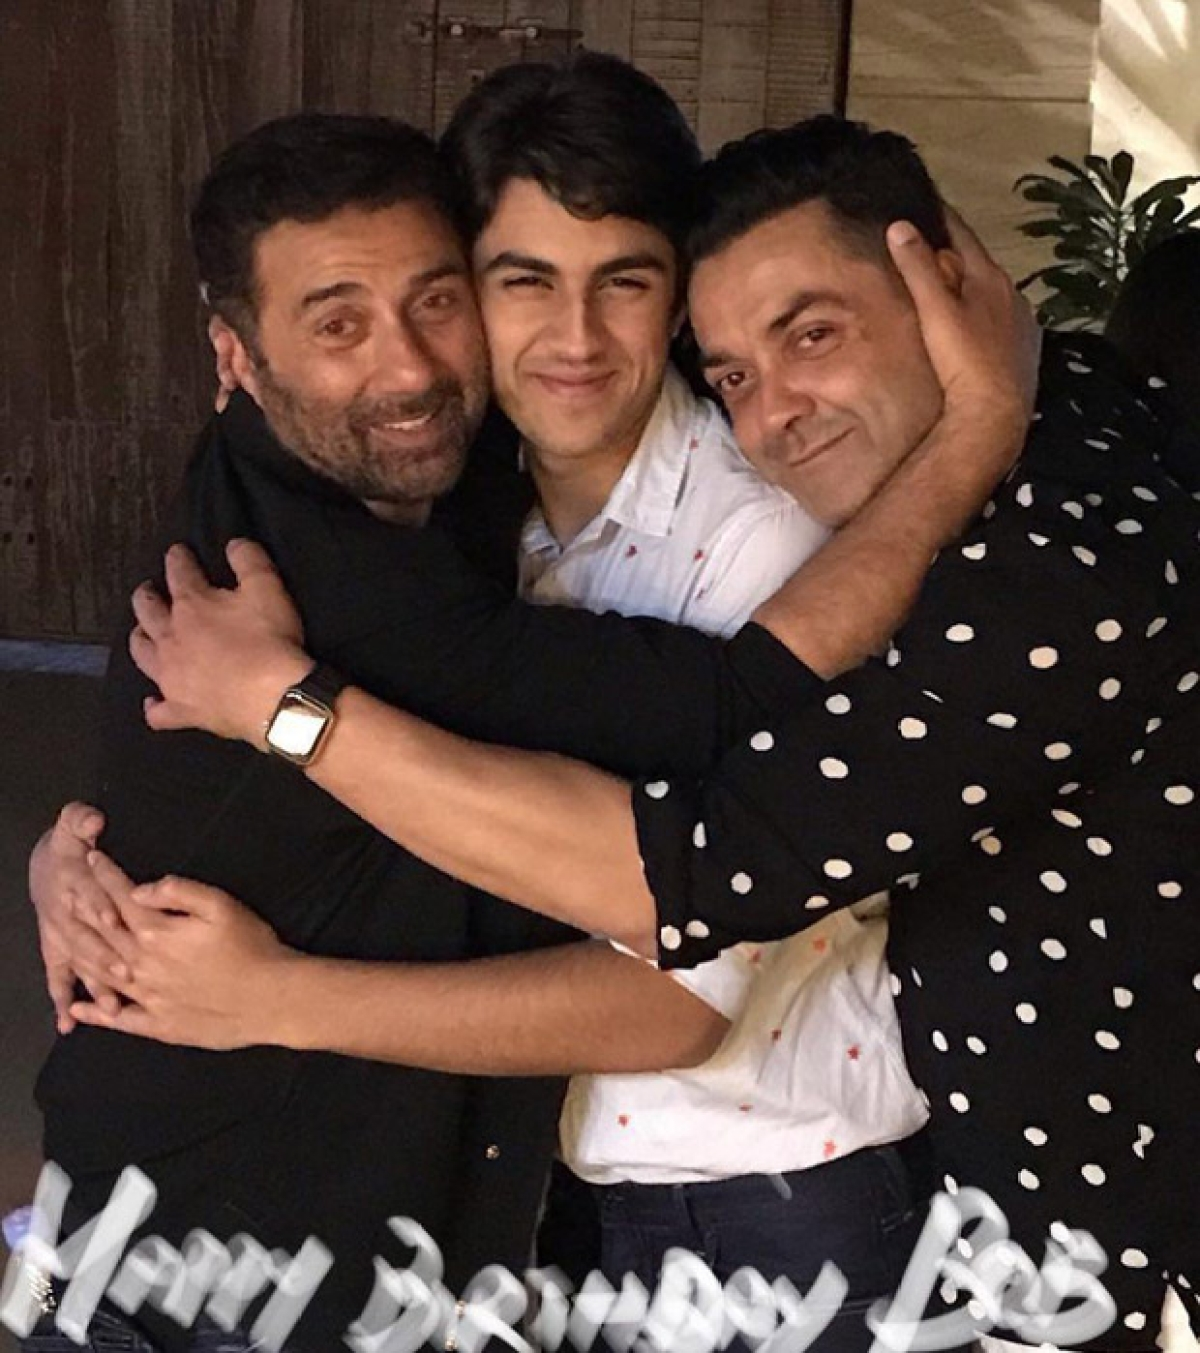 Inside Pics: Bobby Deol celebrates 50th birthday bash with Sunny Deol, Ajay Devgn and others